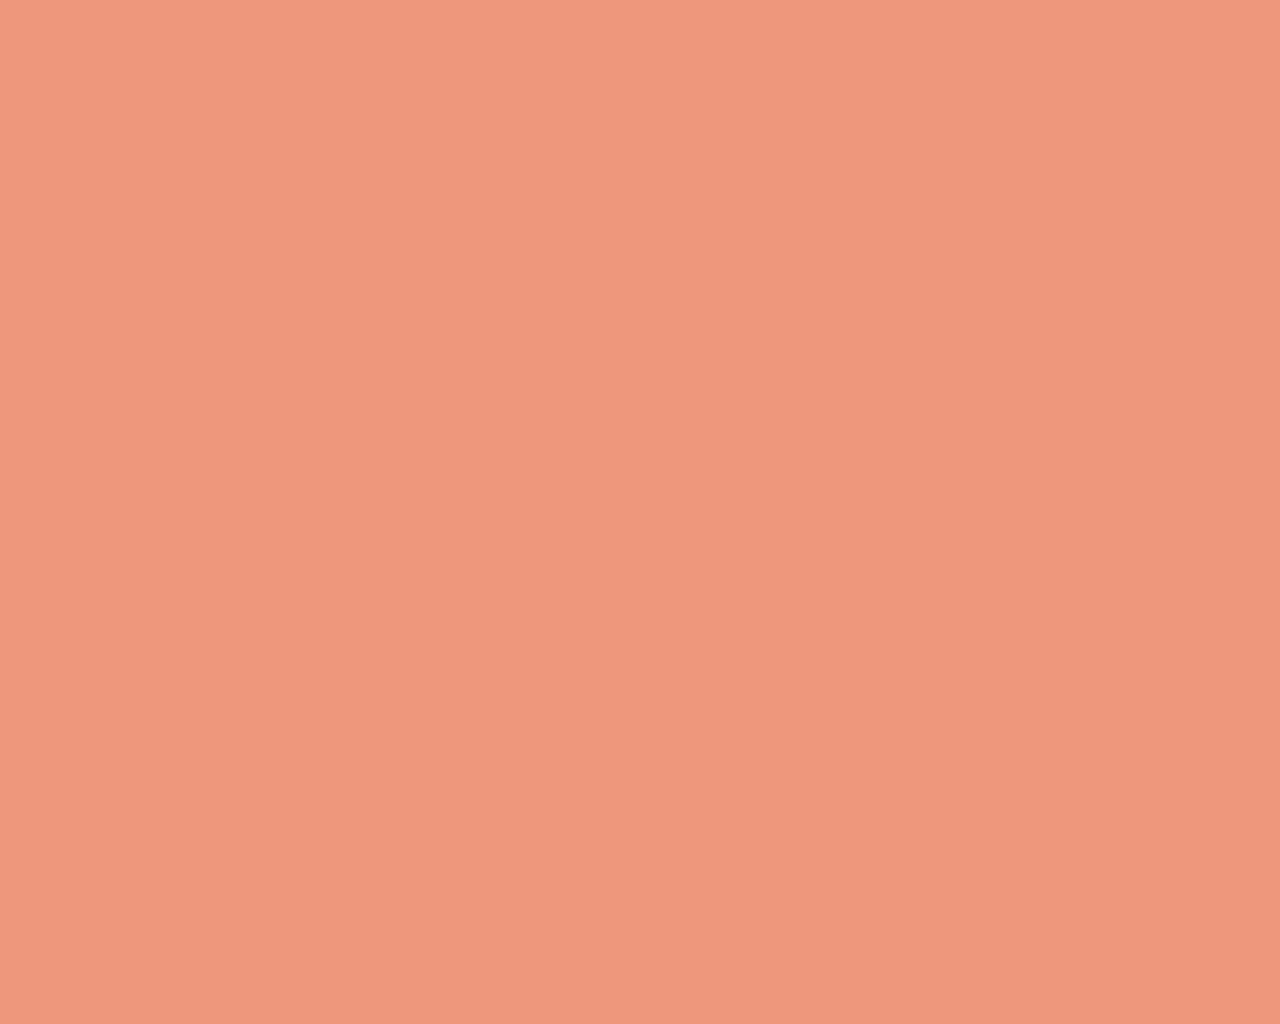 1280x1024 Dark Salmon Solid Color Background